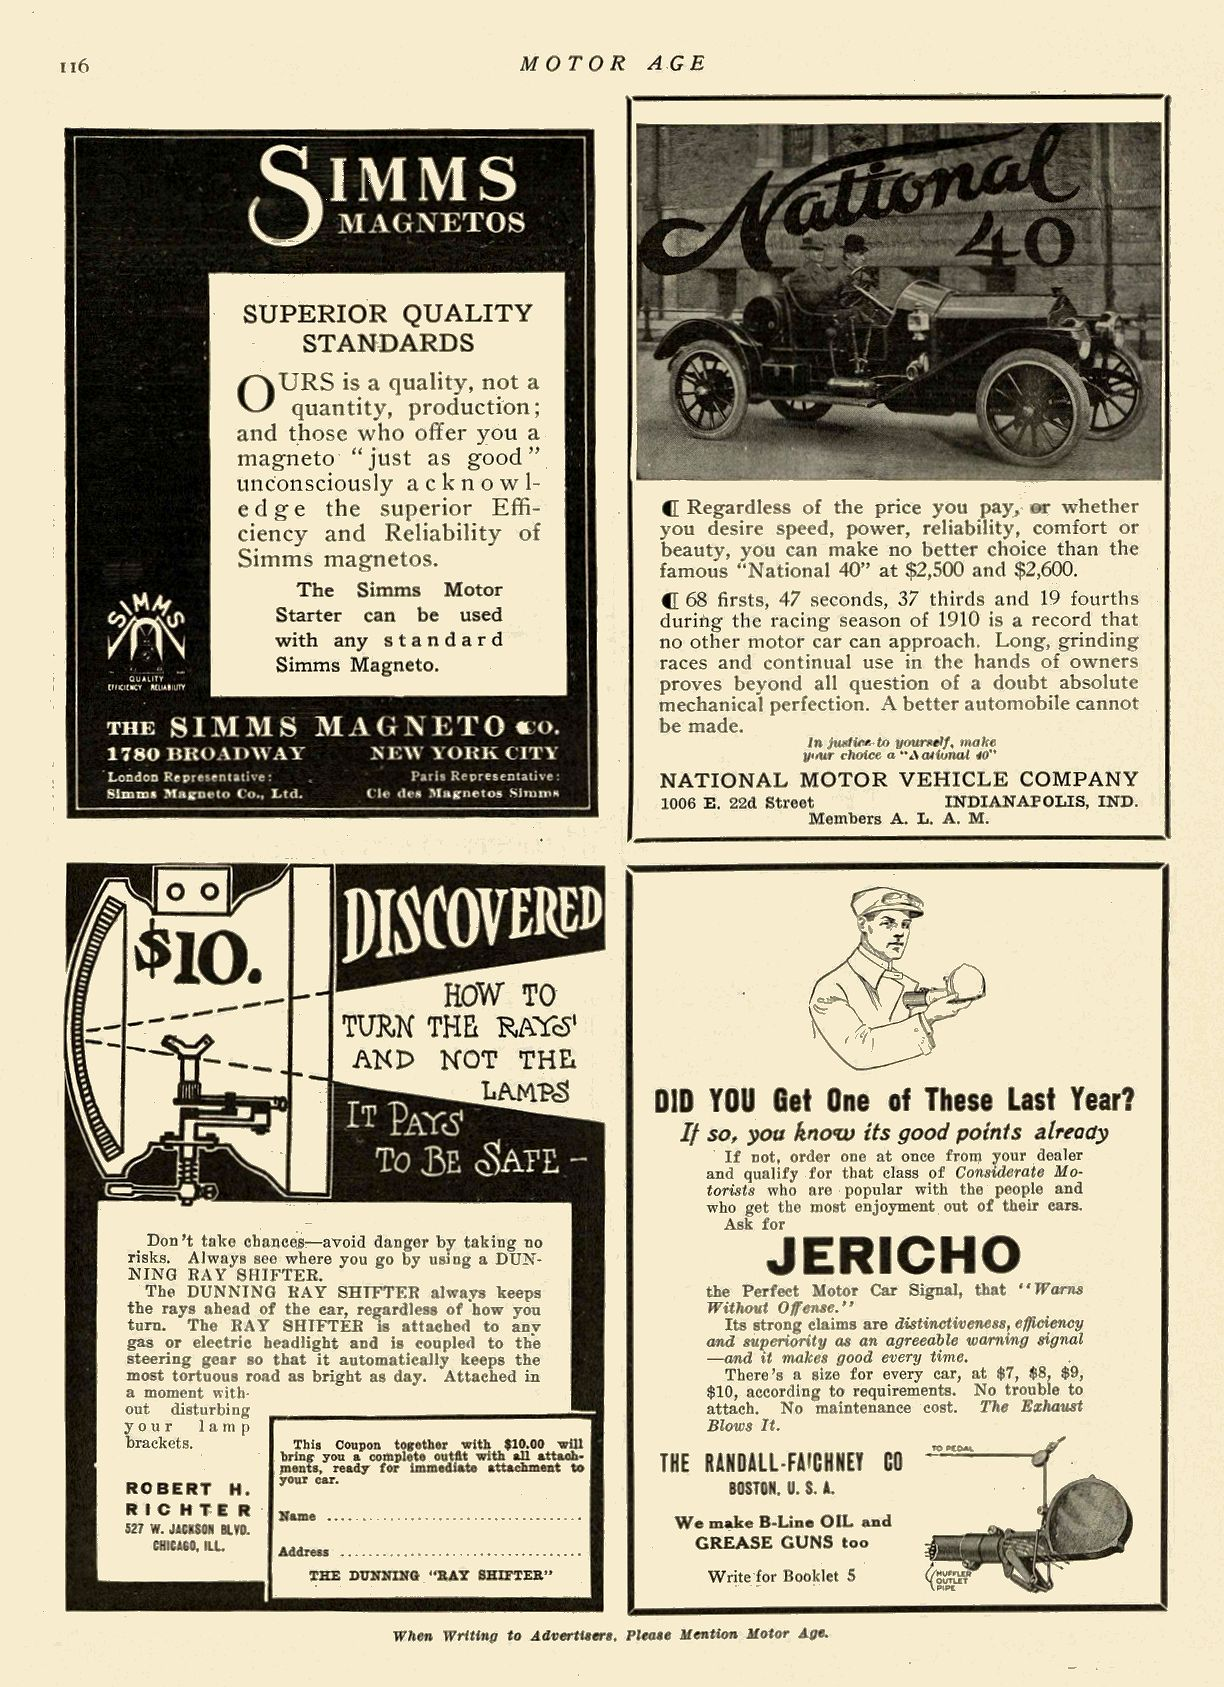 1911 3 16 NATIONAL National 40 NATIONAL MOTOR VEHICLE COMPANY Indianapolis, IND MOTOR AGE March 16, 1911 8.5″x11.75″ page 116